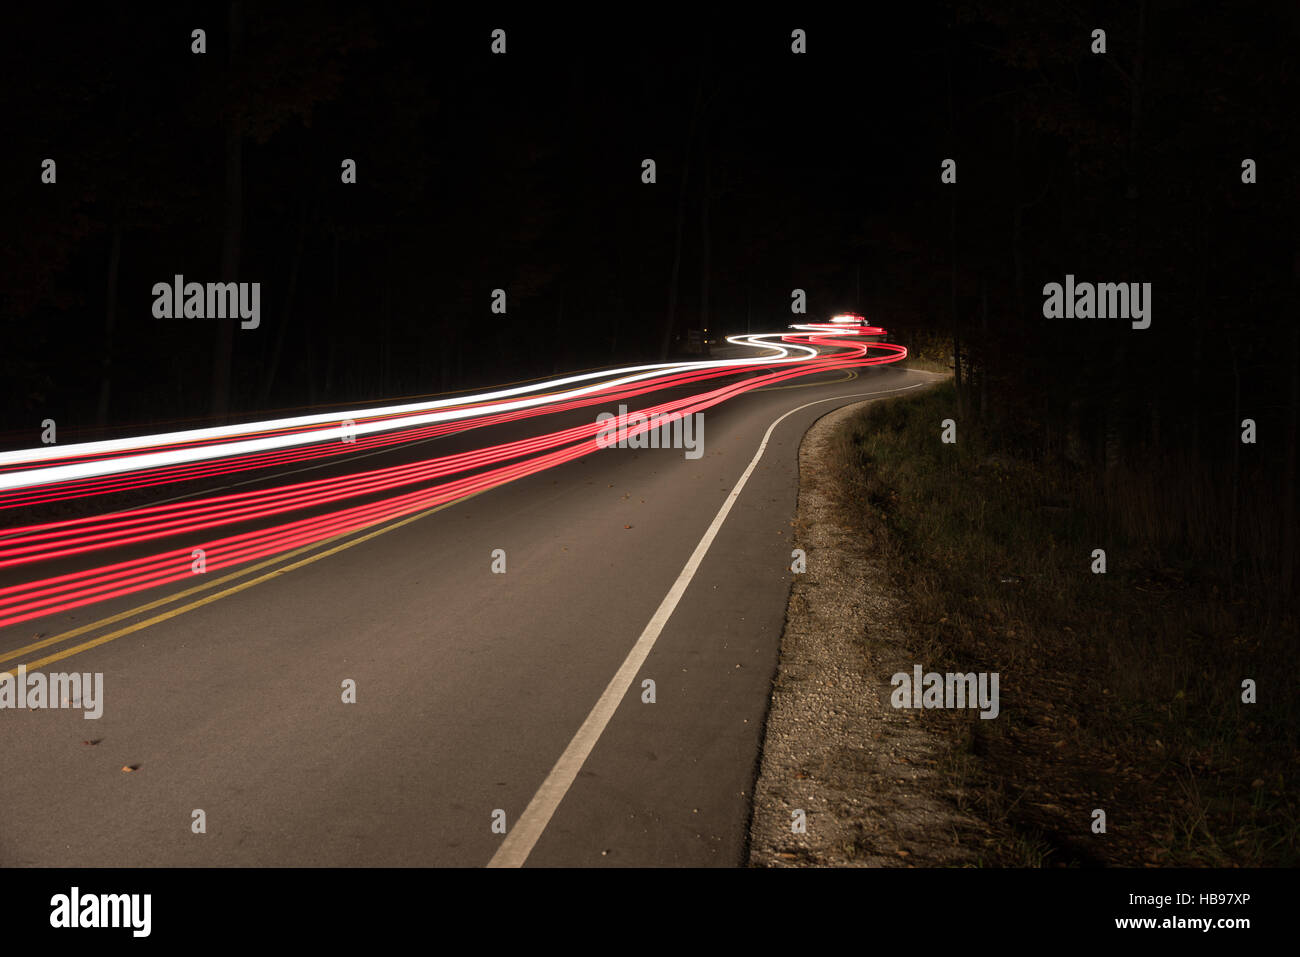 Curved road at night with cars driving up and down causing light trails. - Stock Image